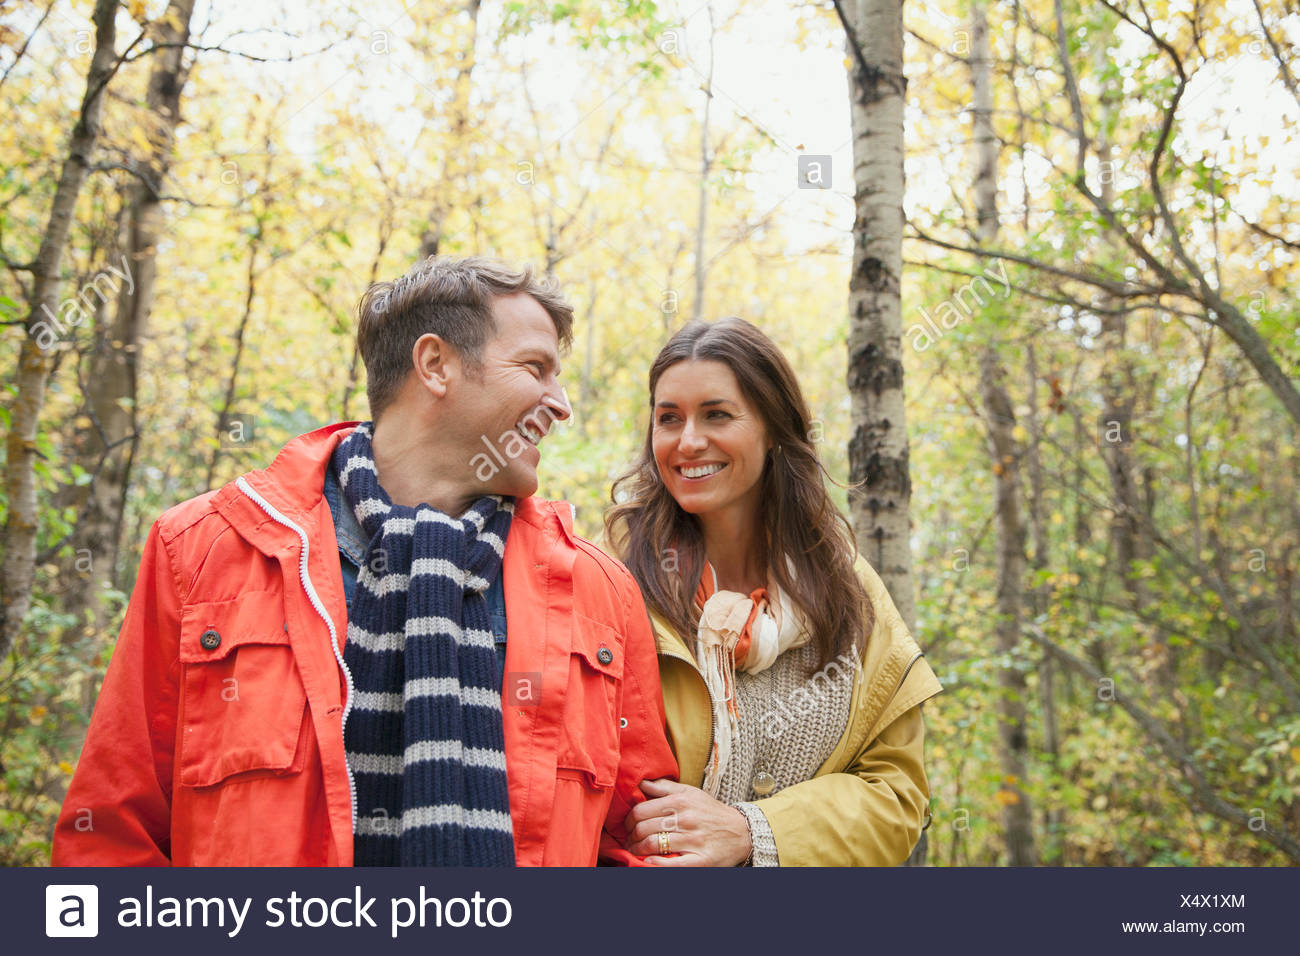 Happy couple walking in park - Stock Image